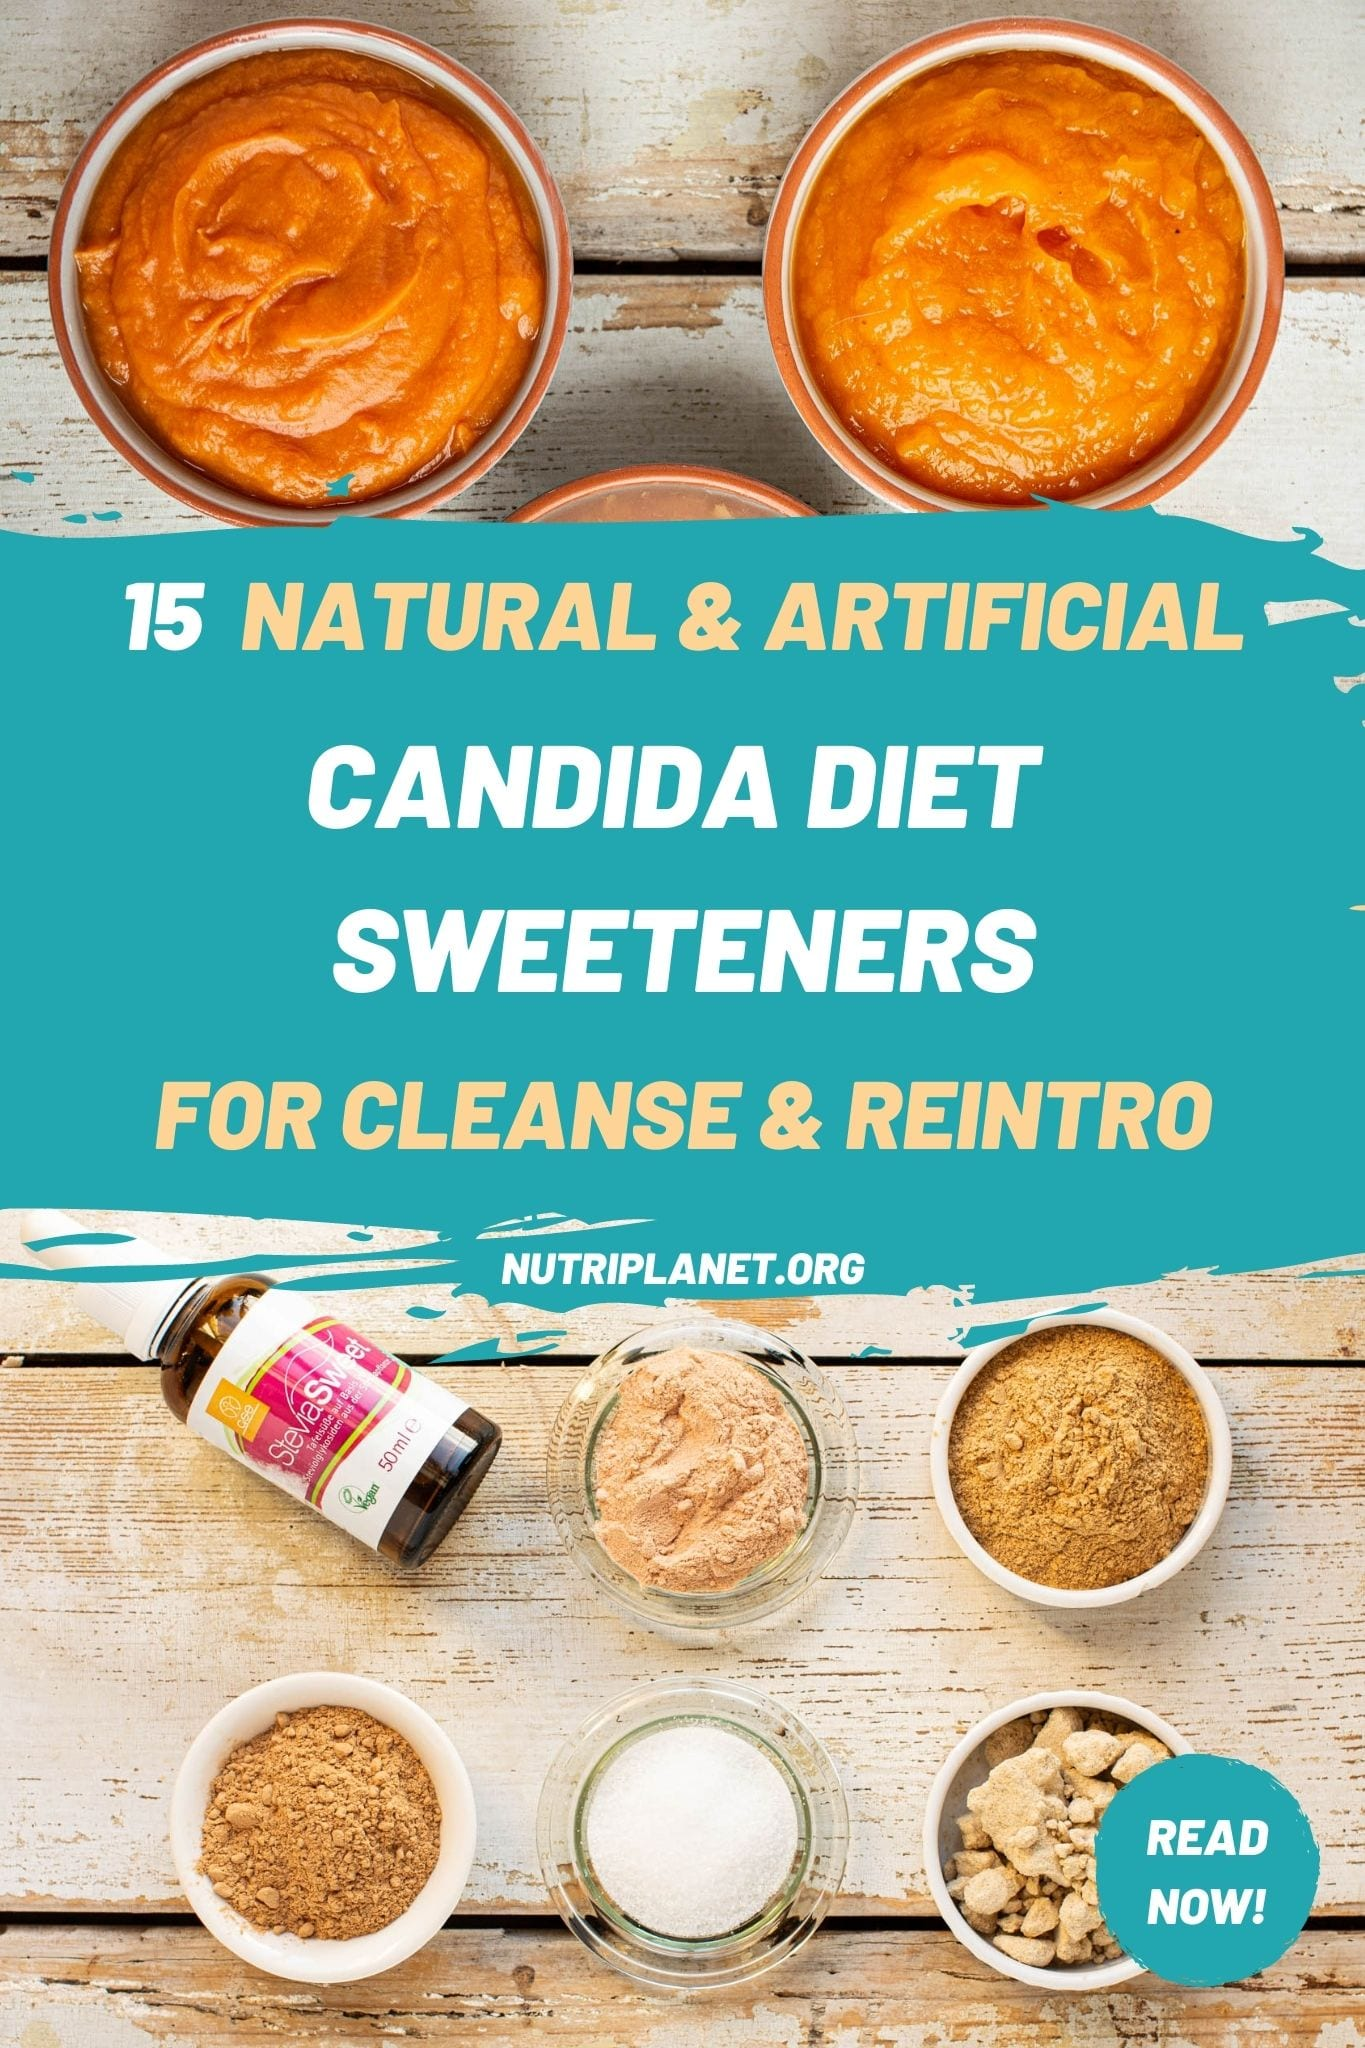 Learn how to use 15 Candida diet sweeteners for both cleanse and reintroduction phase.